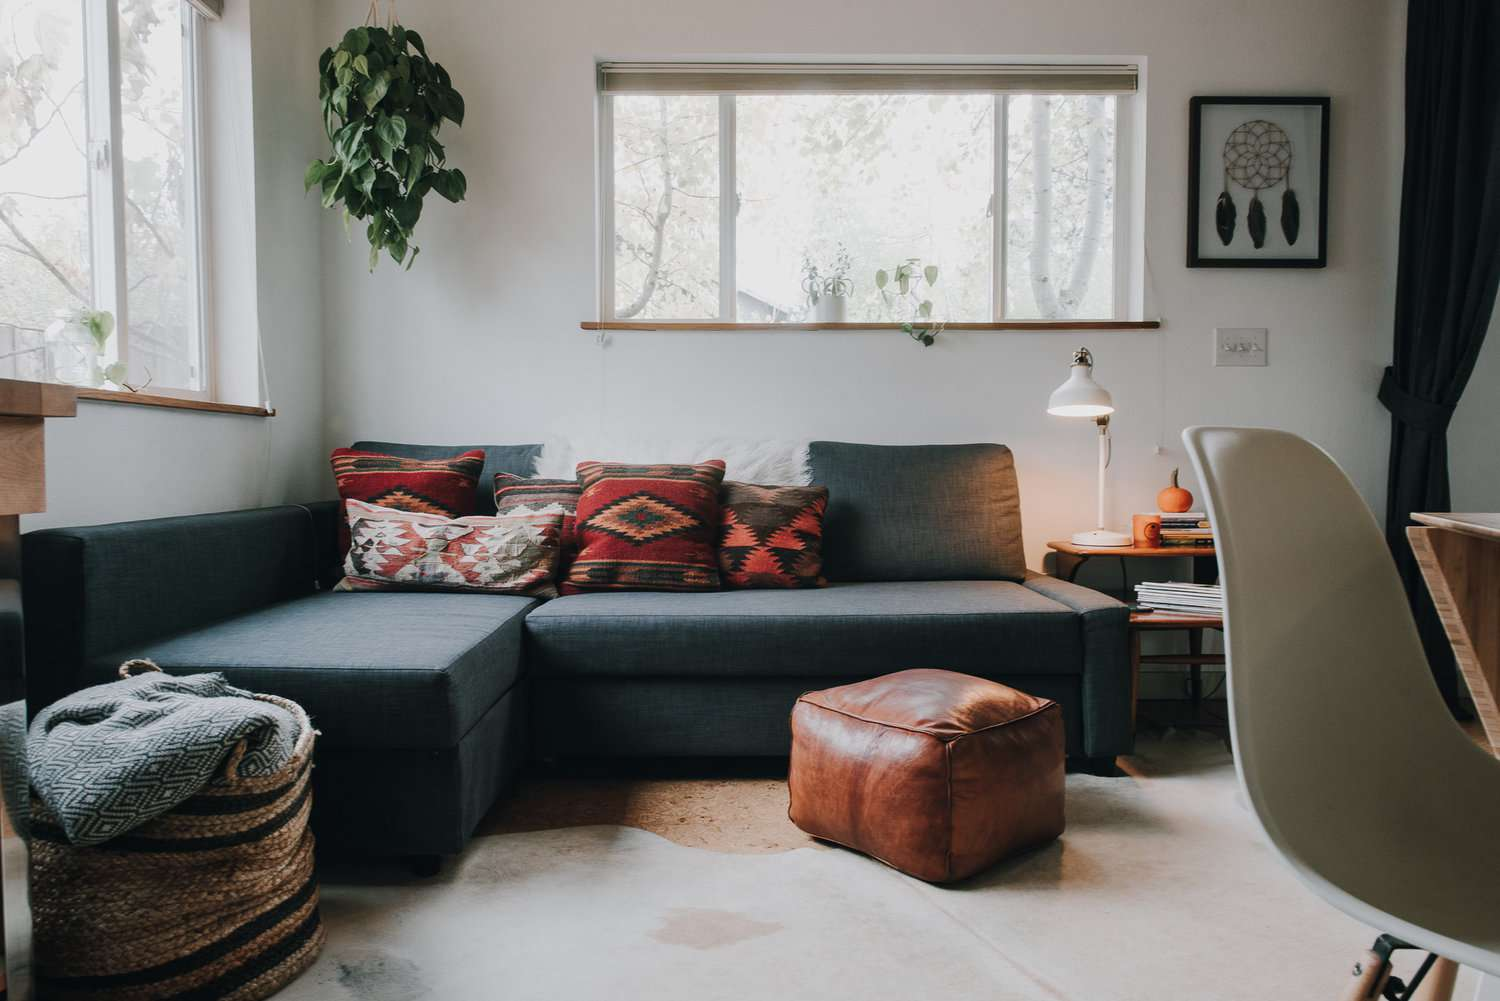 Living room that has a sofa with chaise lounge and ottoman pouf